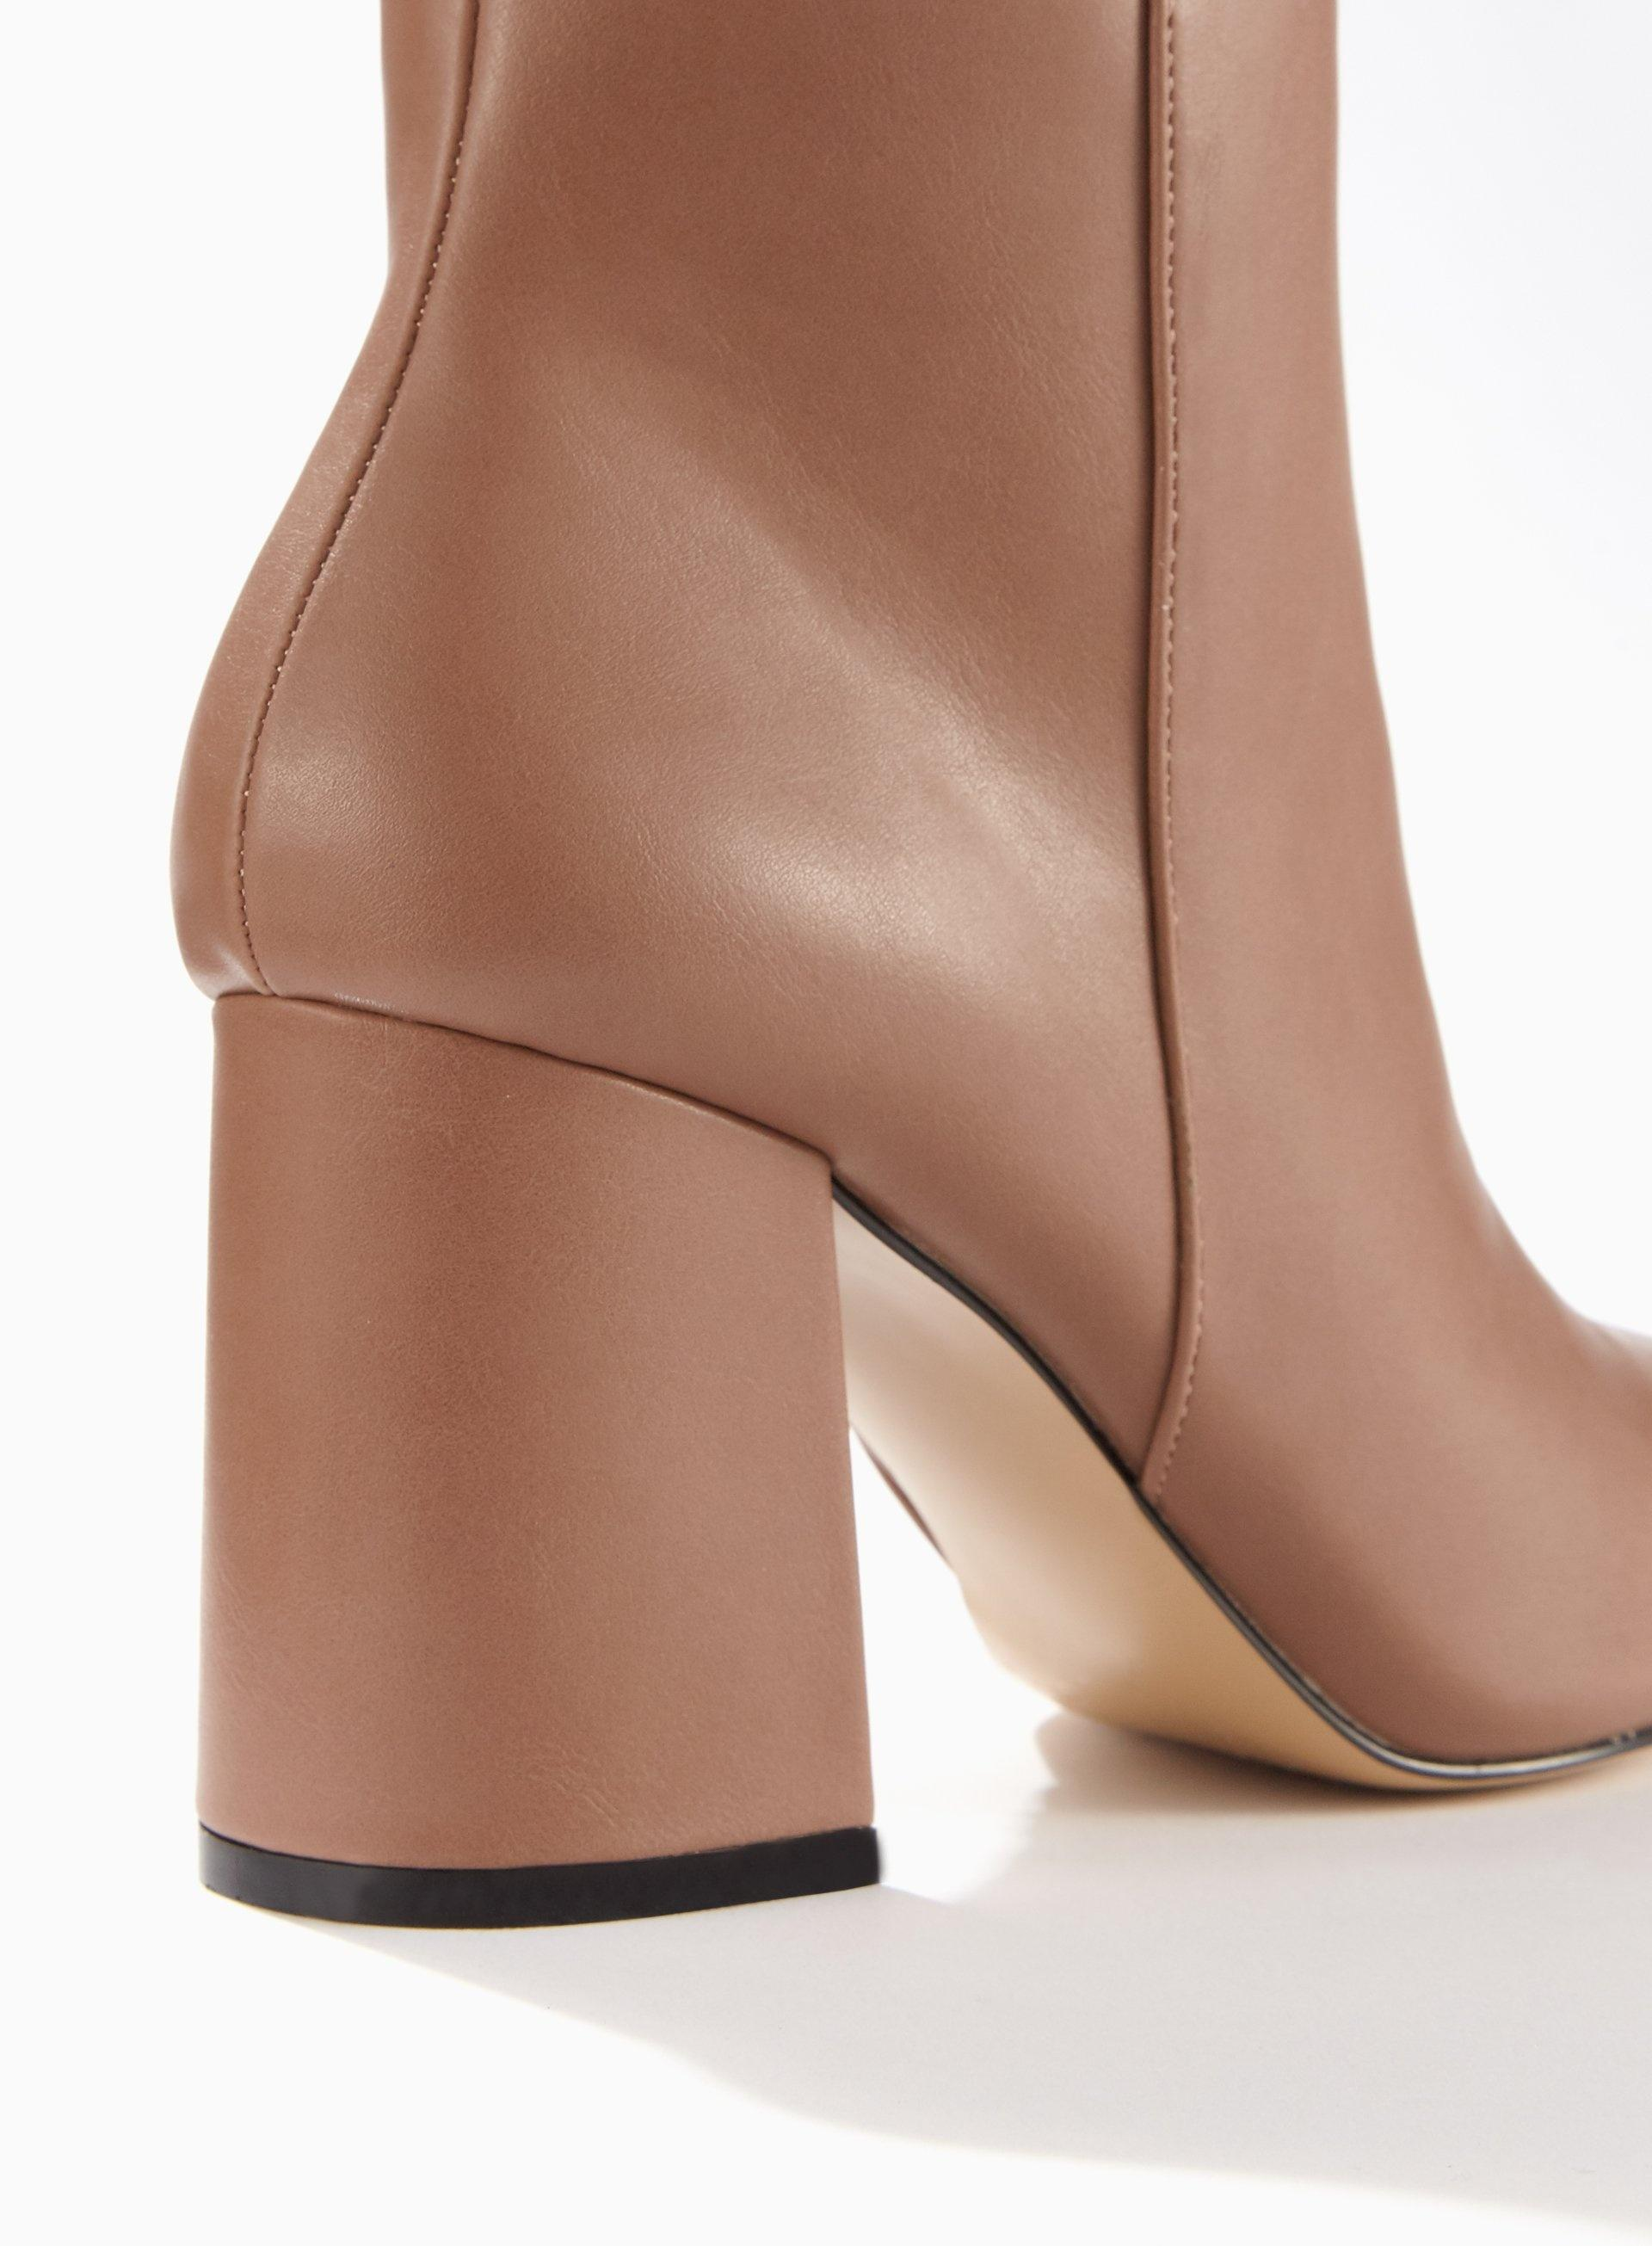 279a725fd Miss Selfridge Anastasia Nude Pointed Toe Ankle Boots in Natural - Lyst